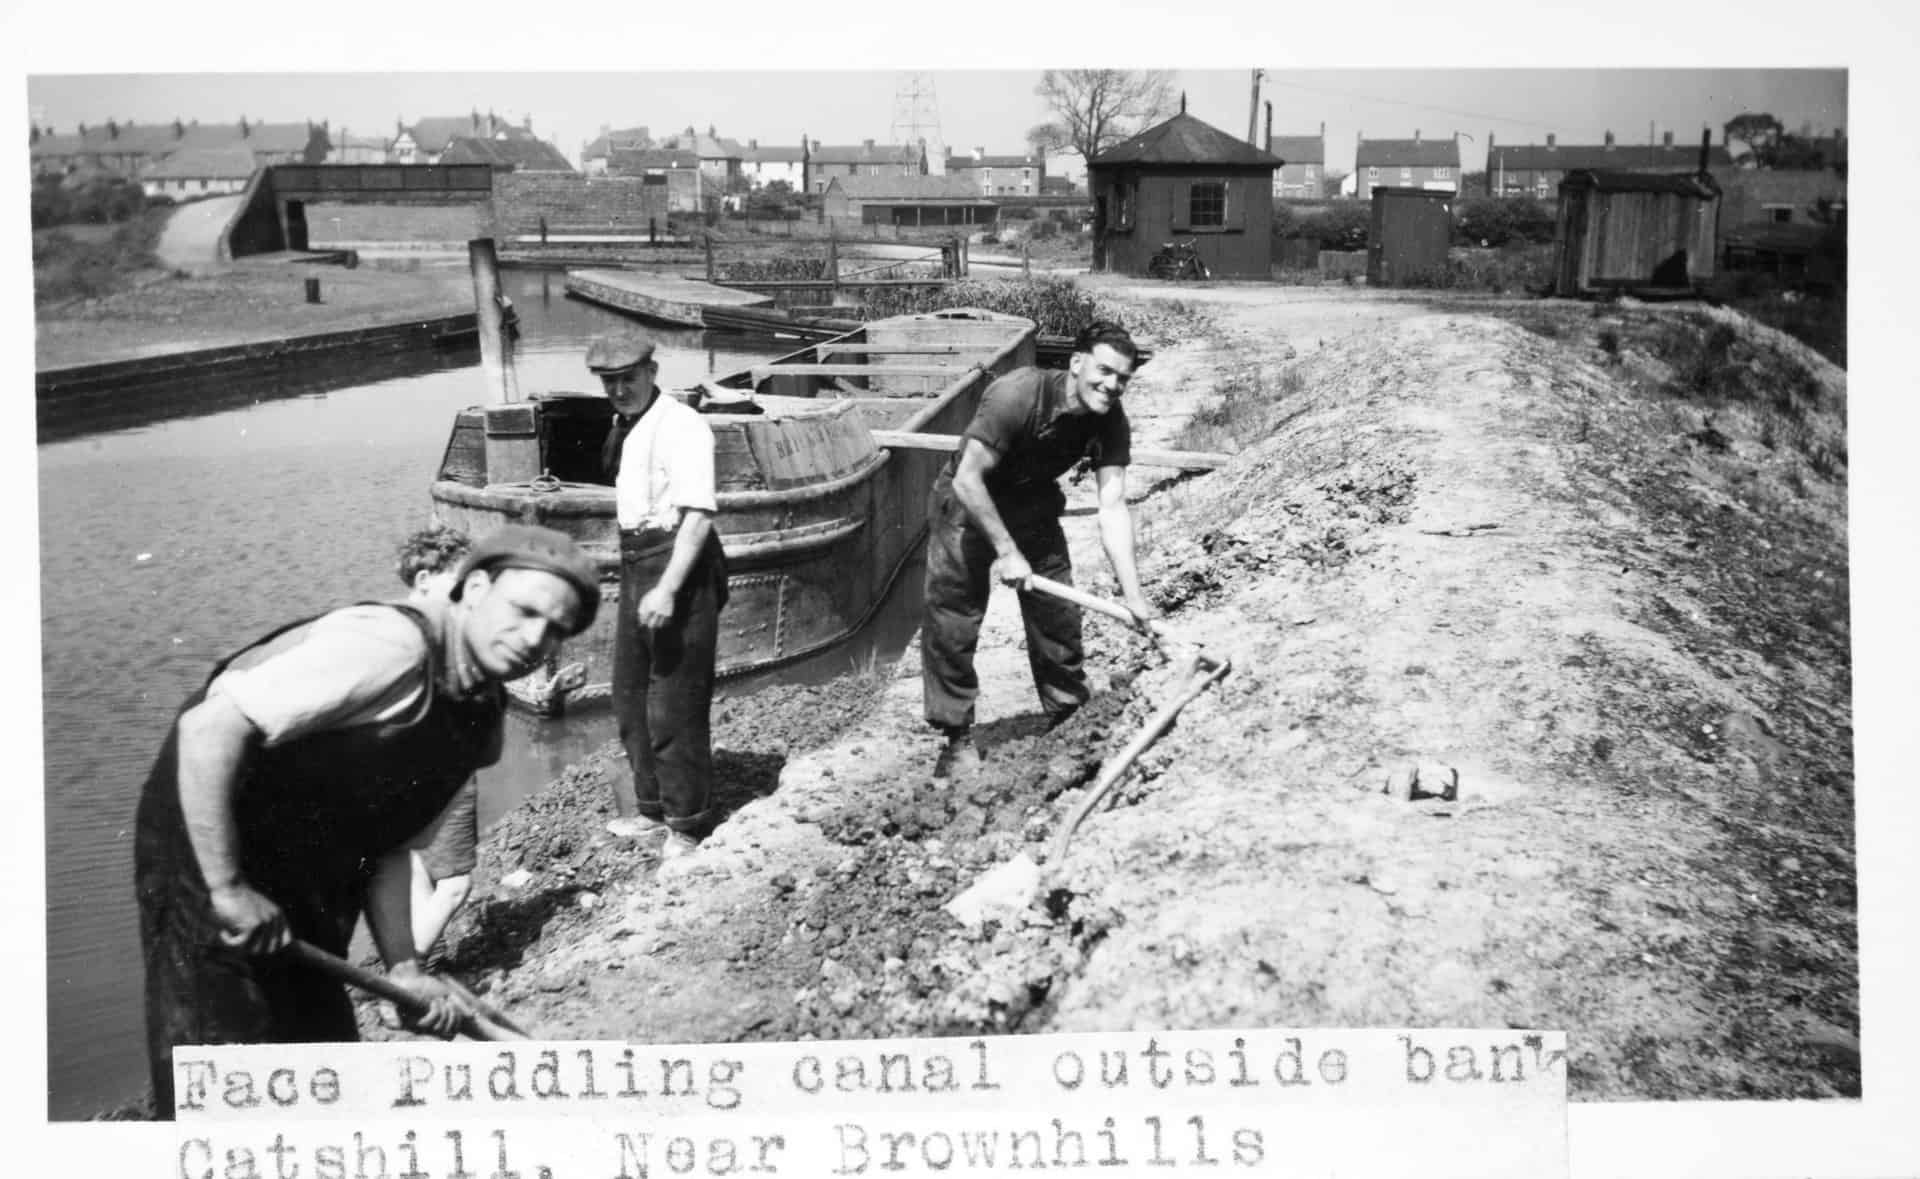 Face Puddling canal outside bank, Catshill, Near Brownhills c 1950s